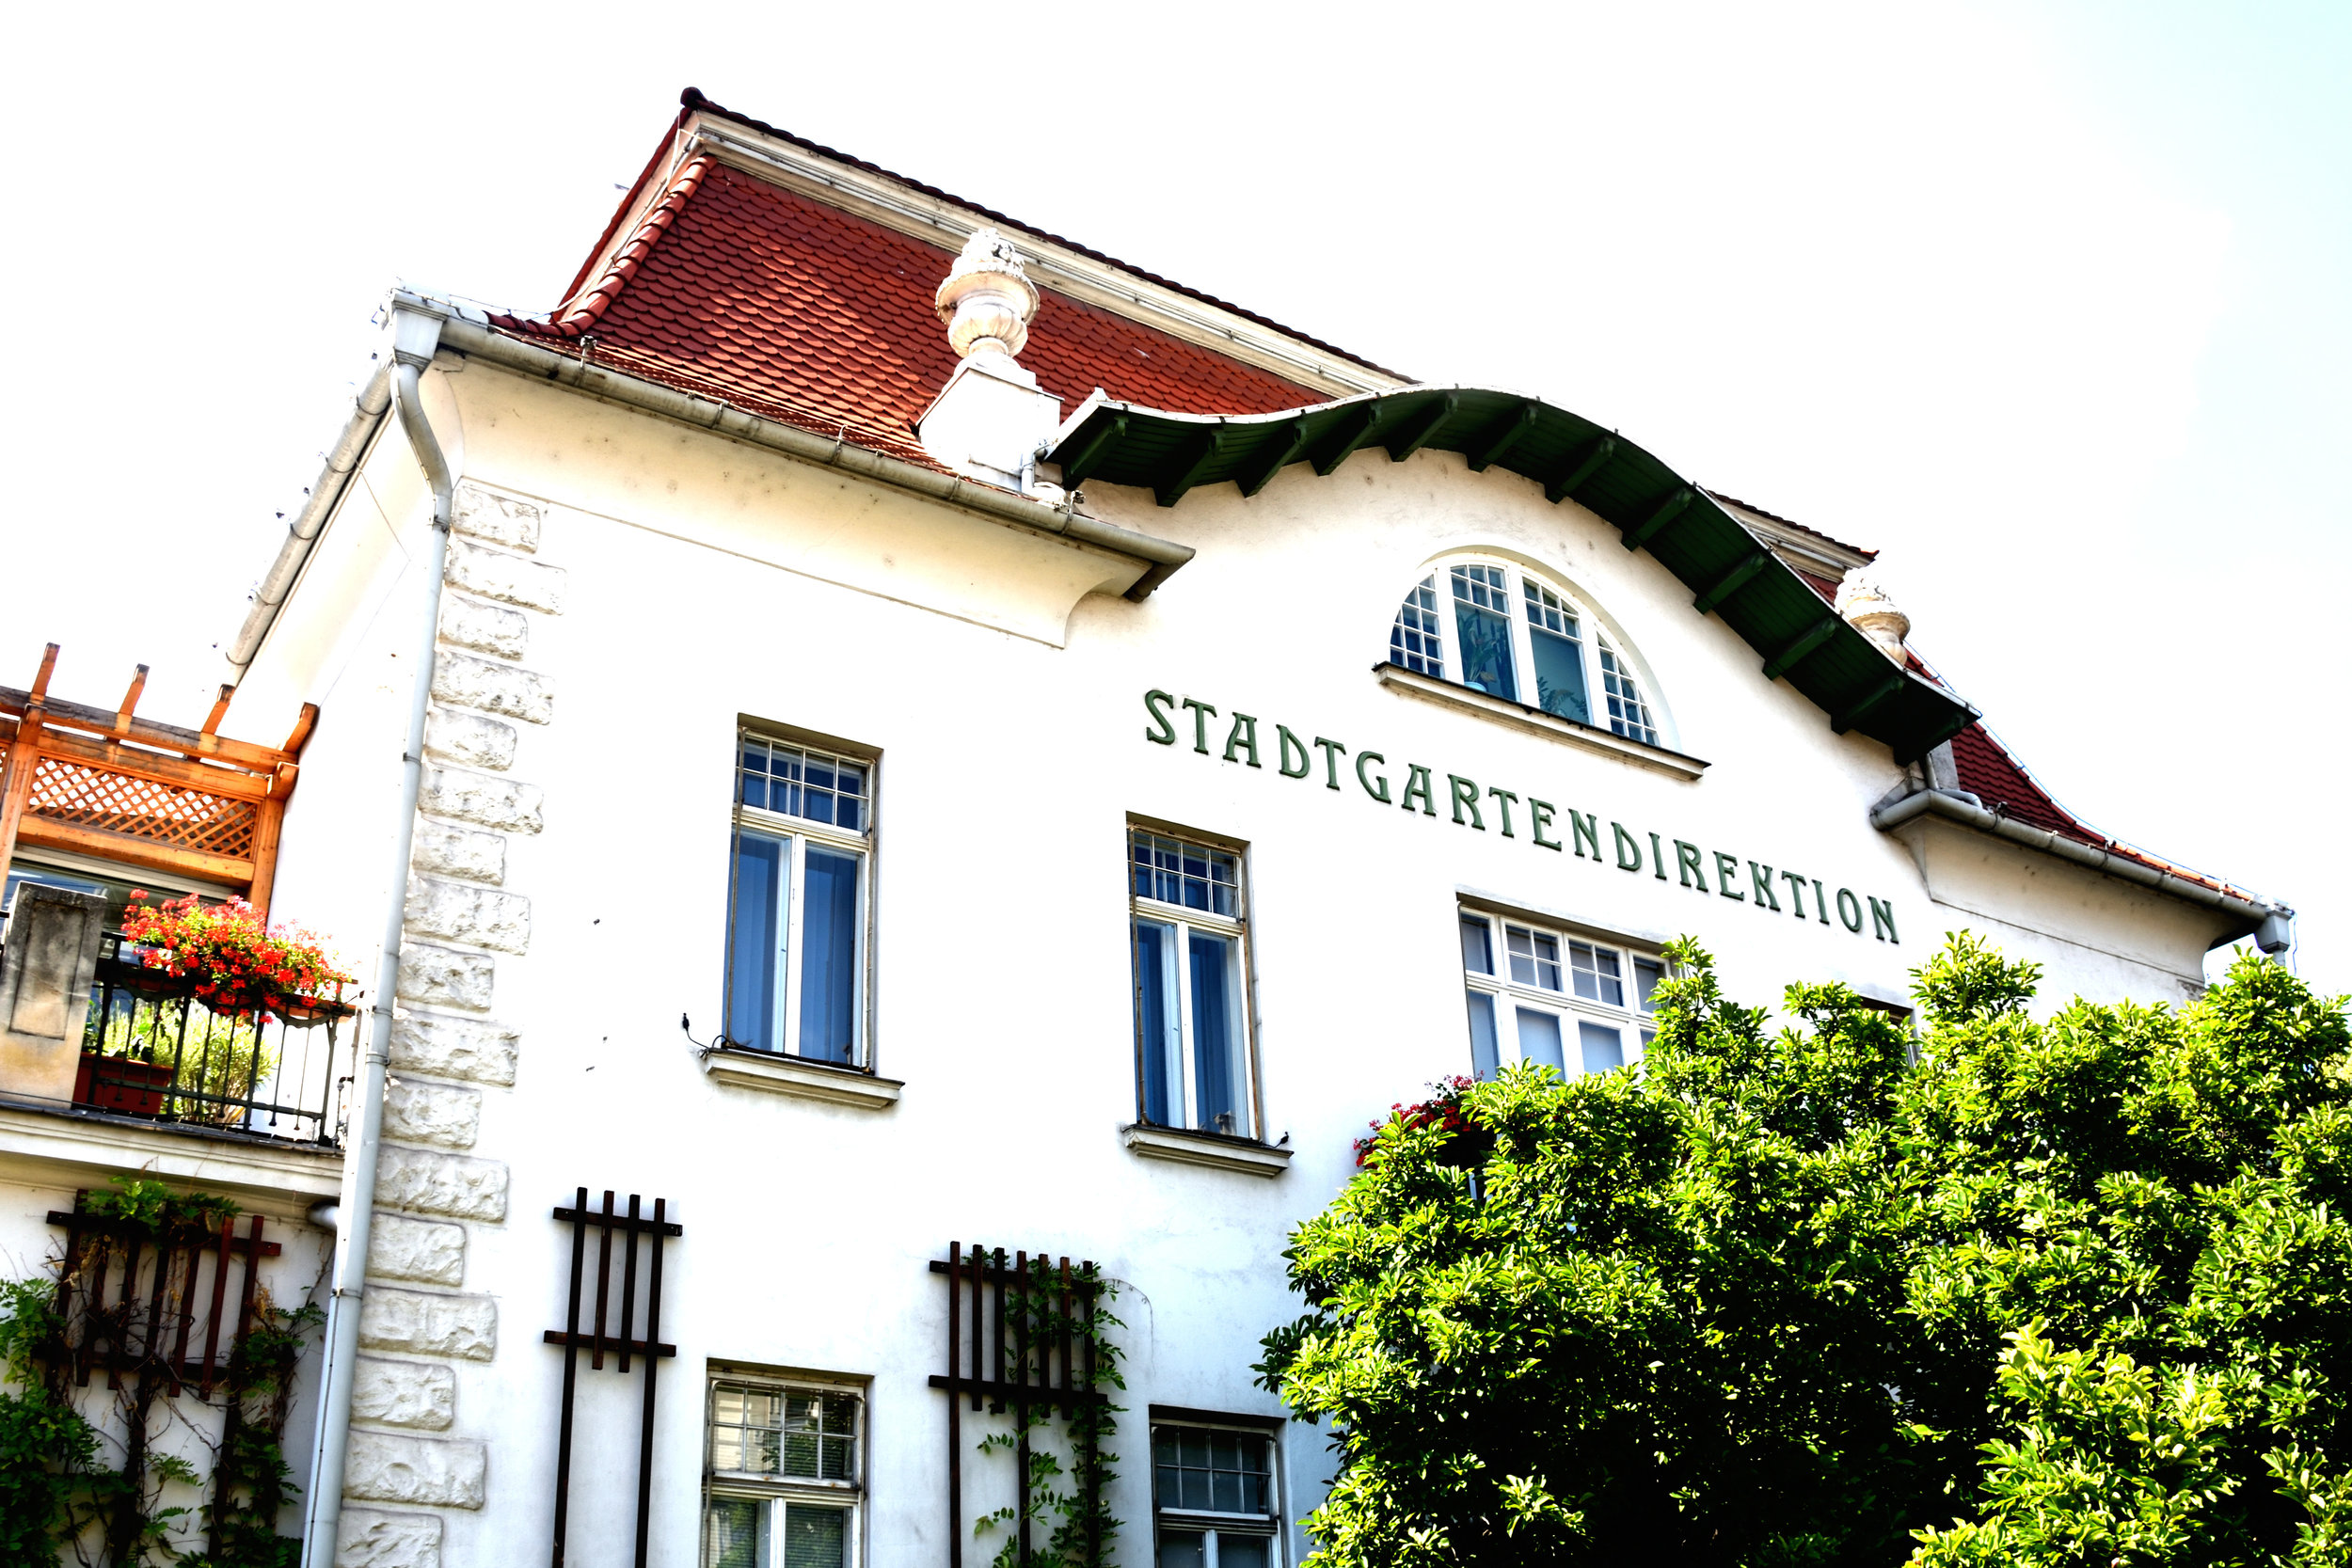 Stadtgartendirektion, Vienna July 2017